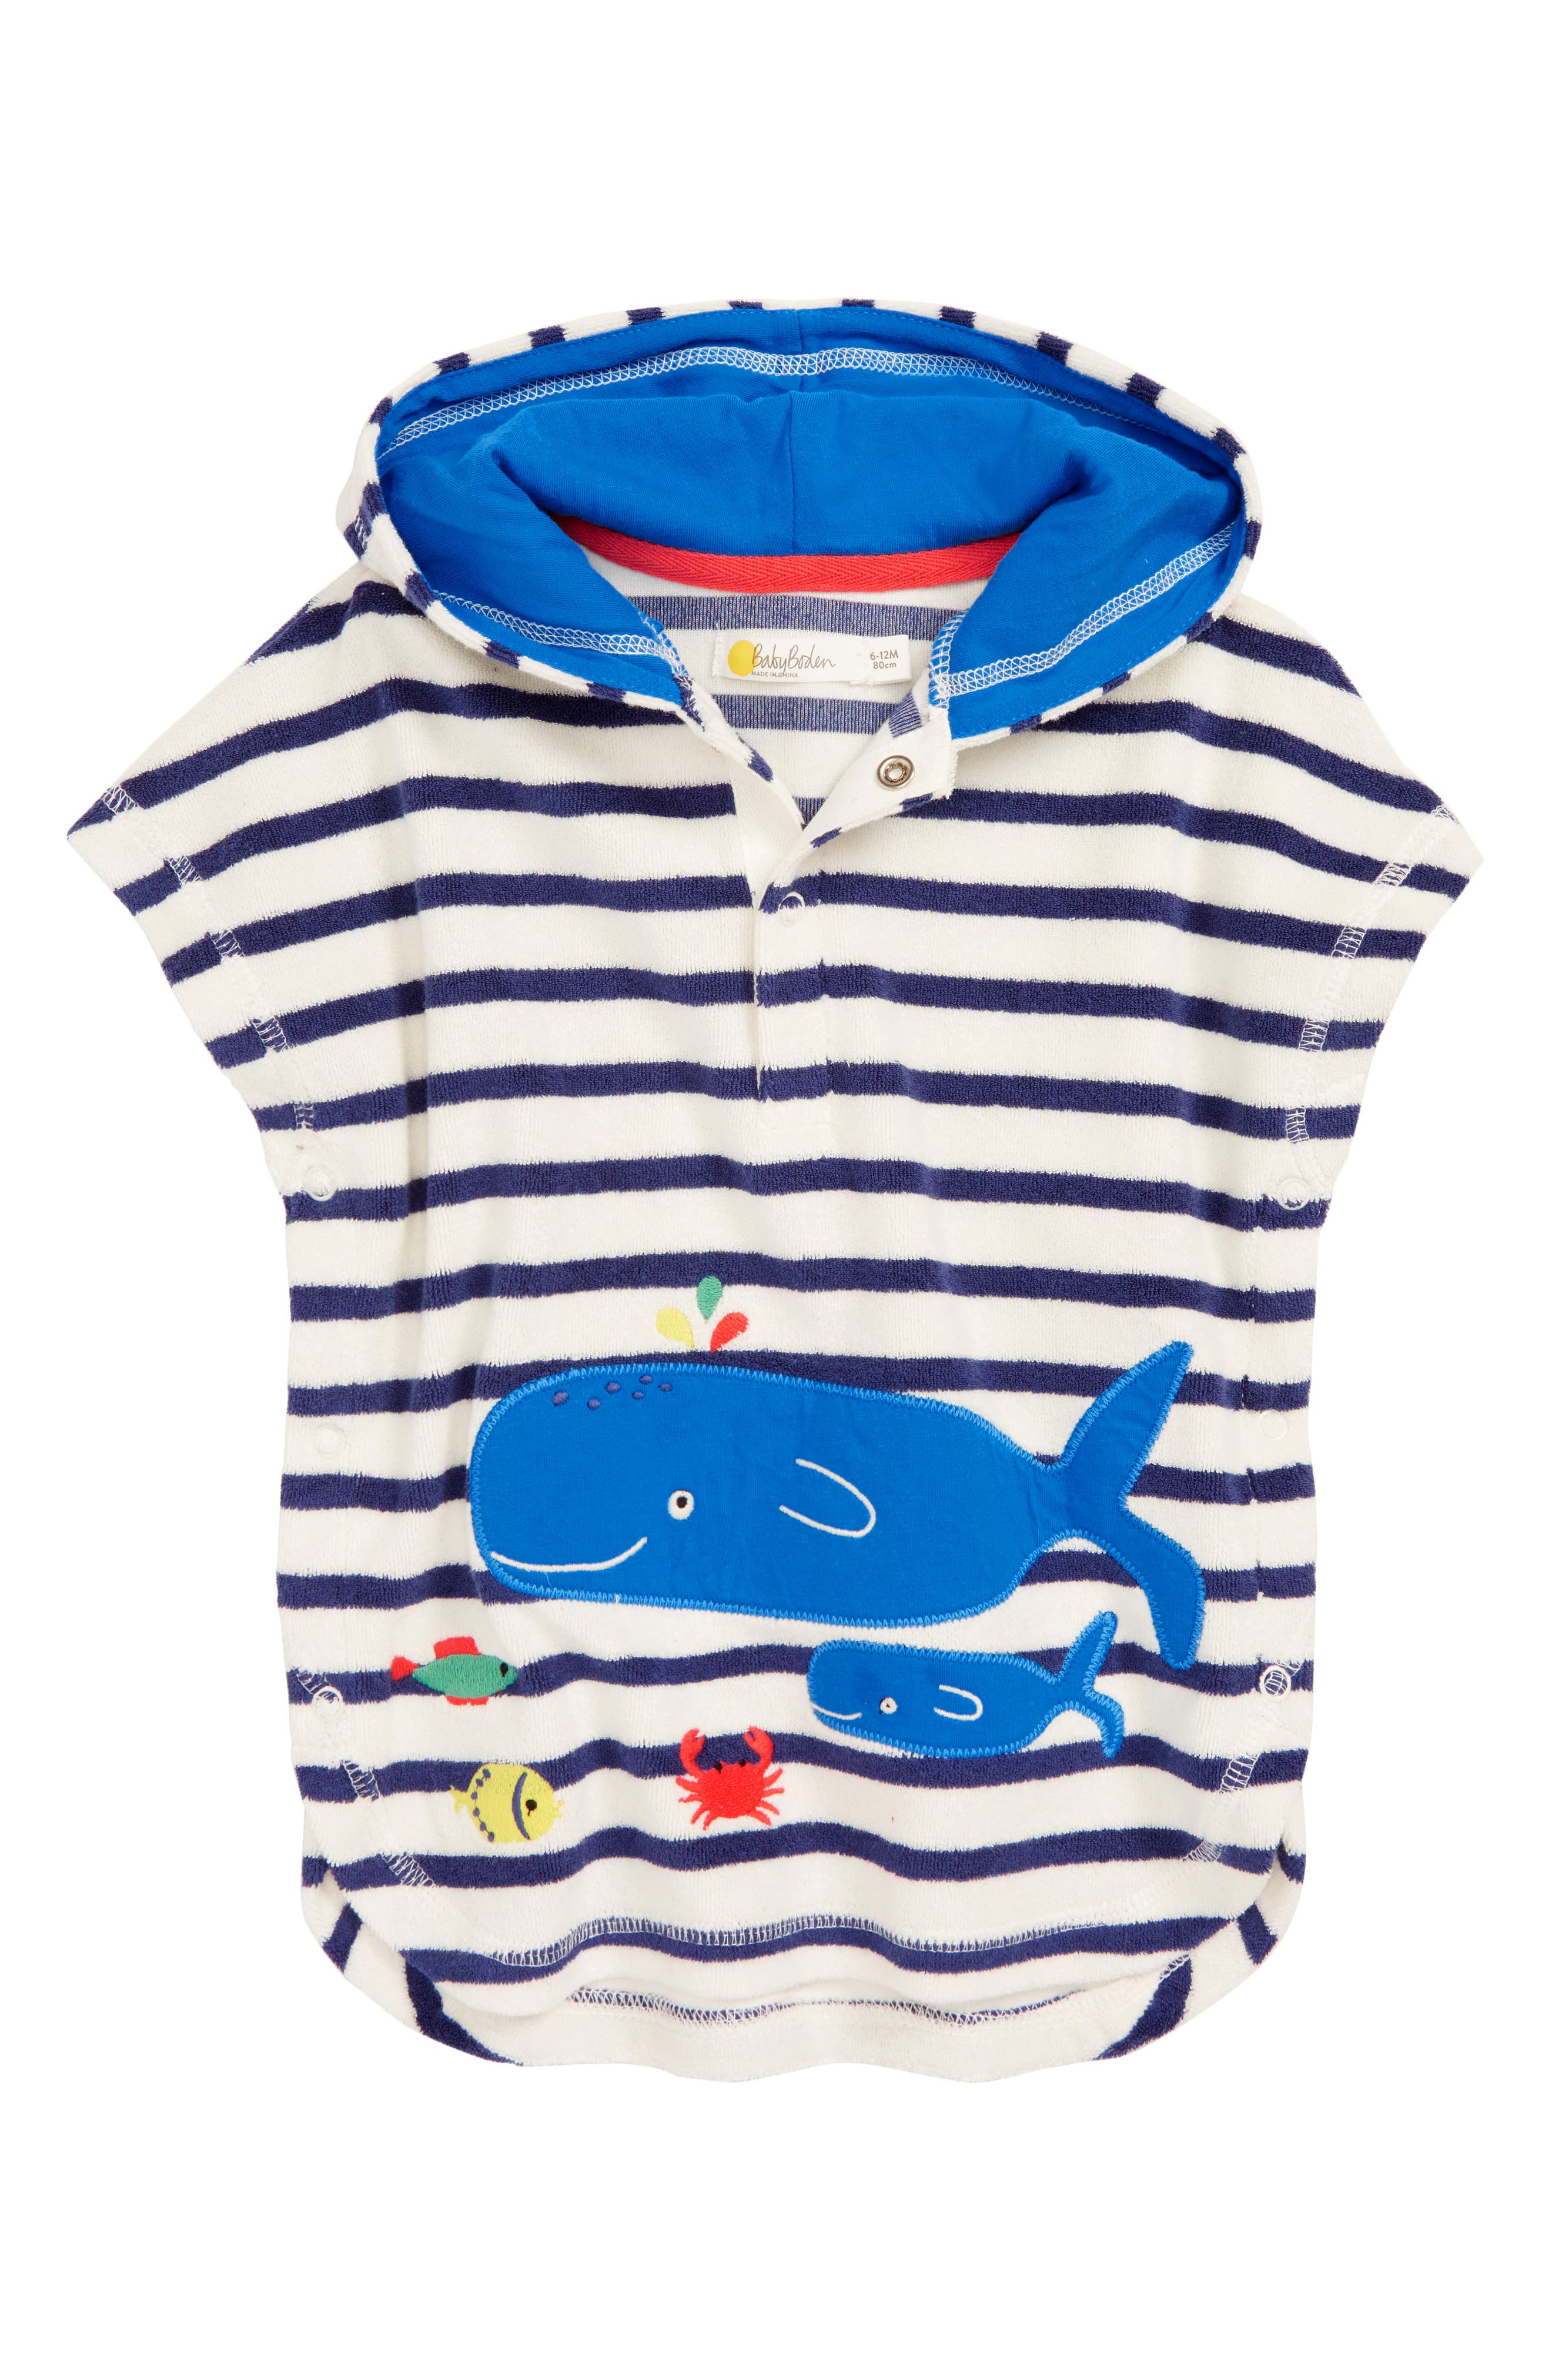 MINI BODEN Whale Appliqué Hooded Cover-Up, Main, color, NAV STARBOARD BLUE/ ECRU WHALE